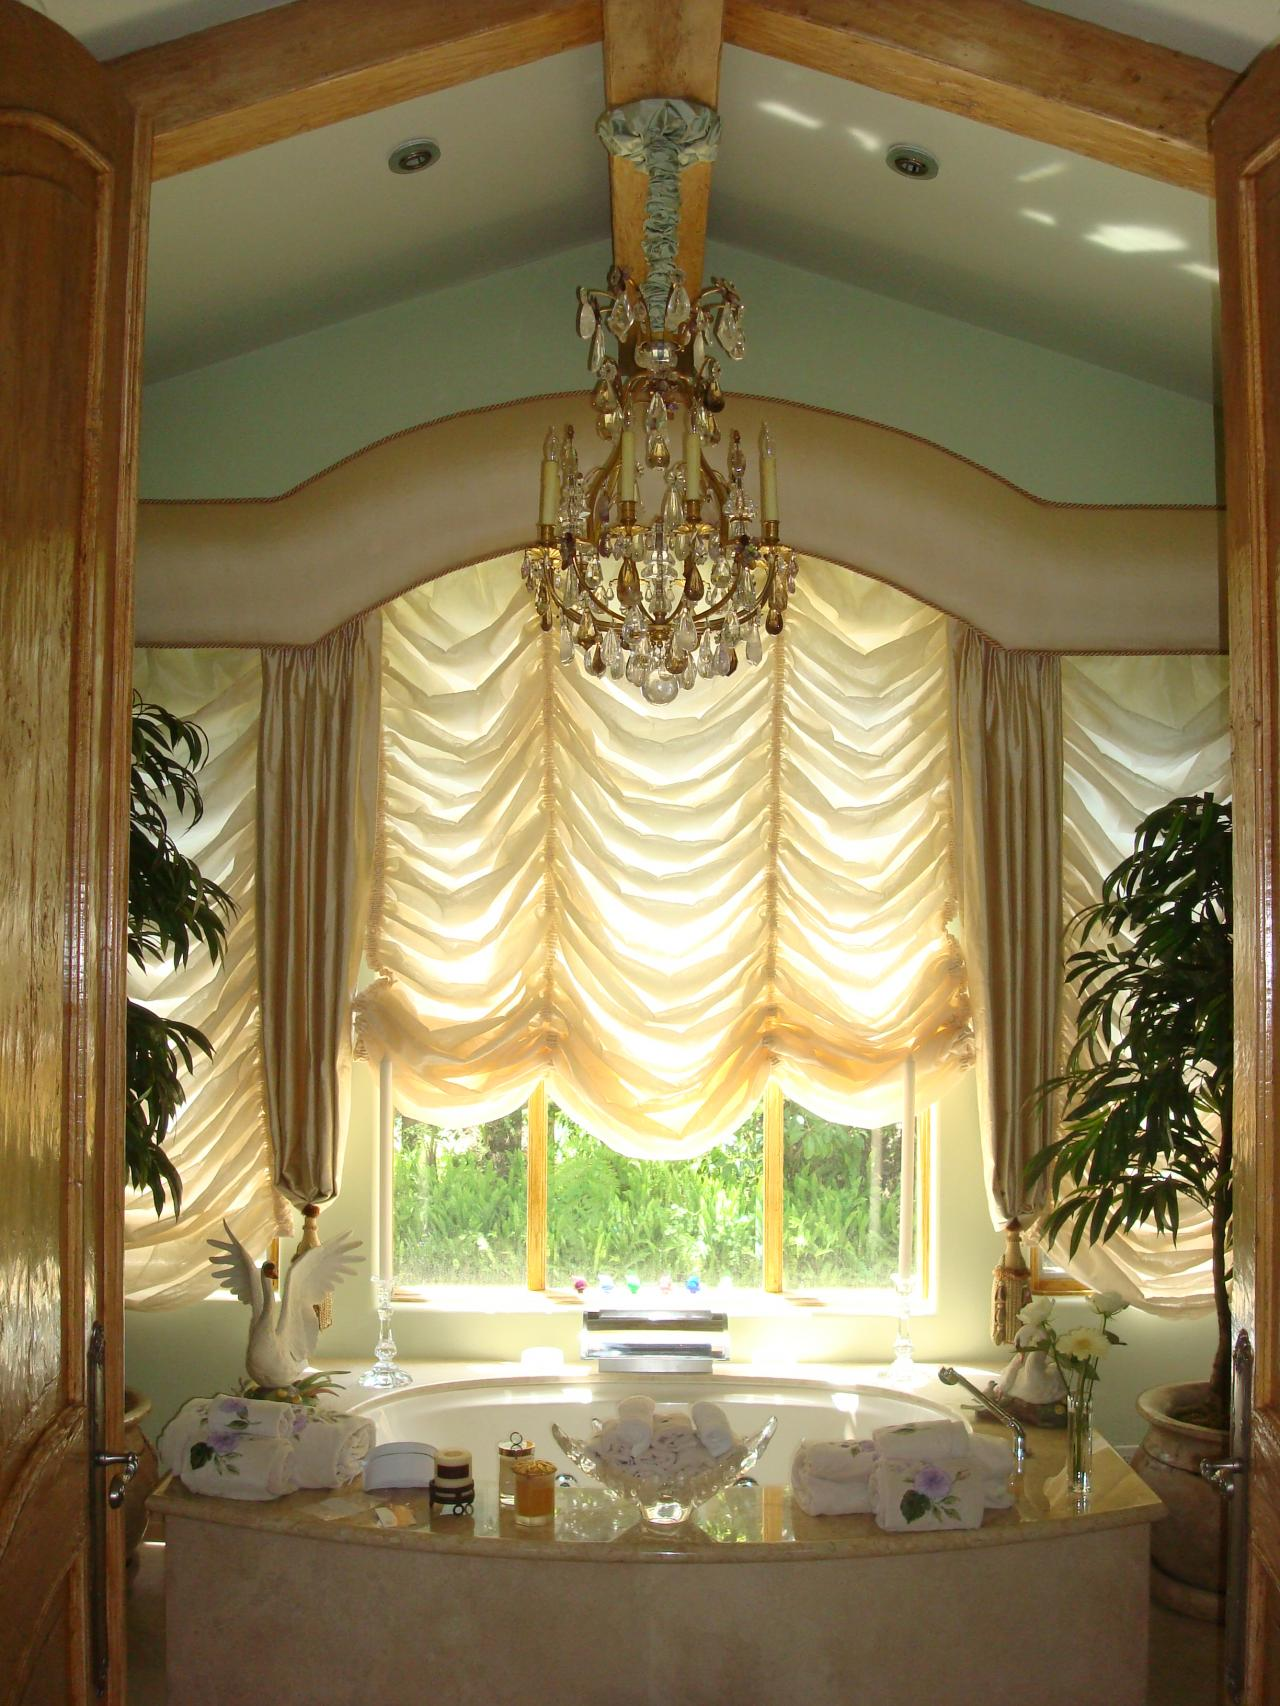 Luxury bathroom curtains - 71 Best Images About Curtains On Pinterest Window Treatments Curtains Drapes And Macrame